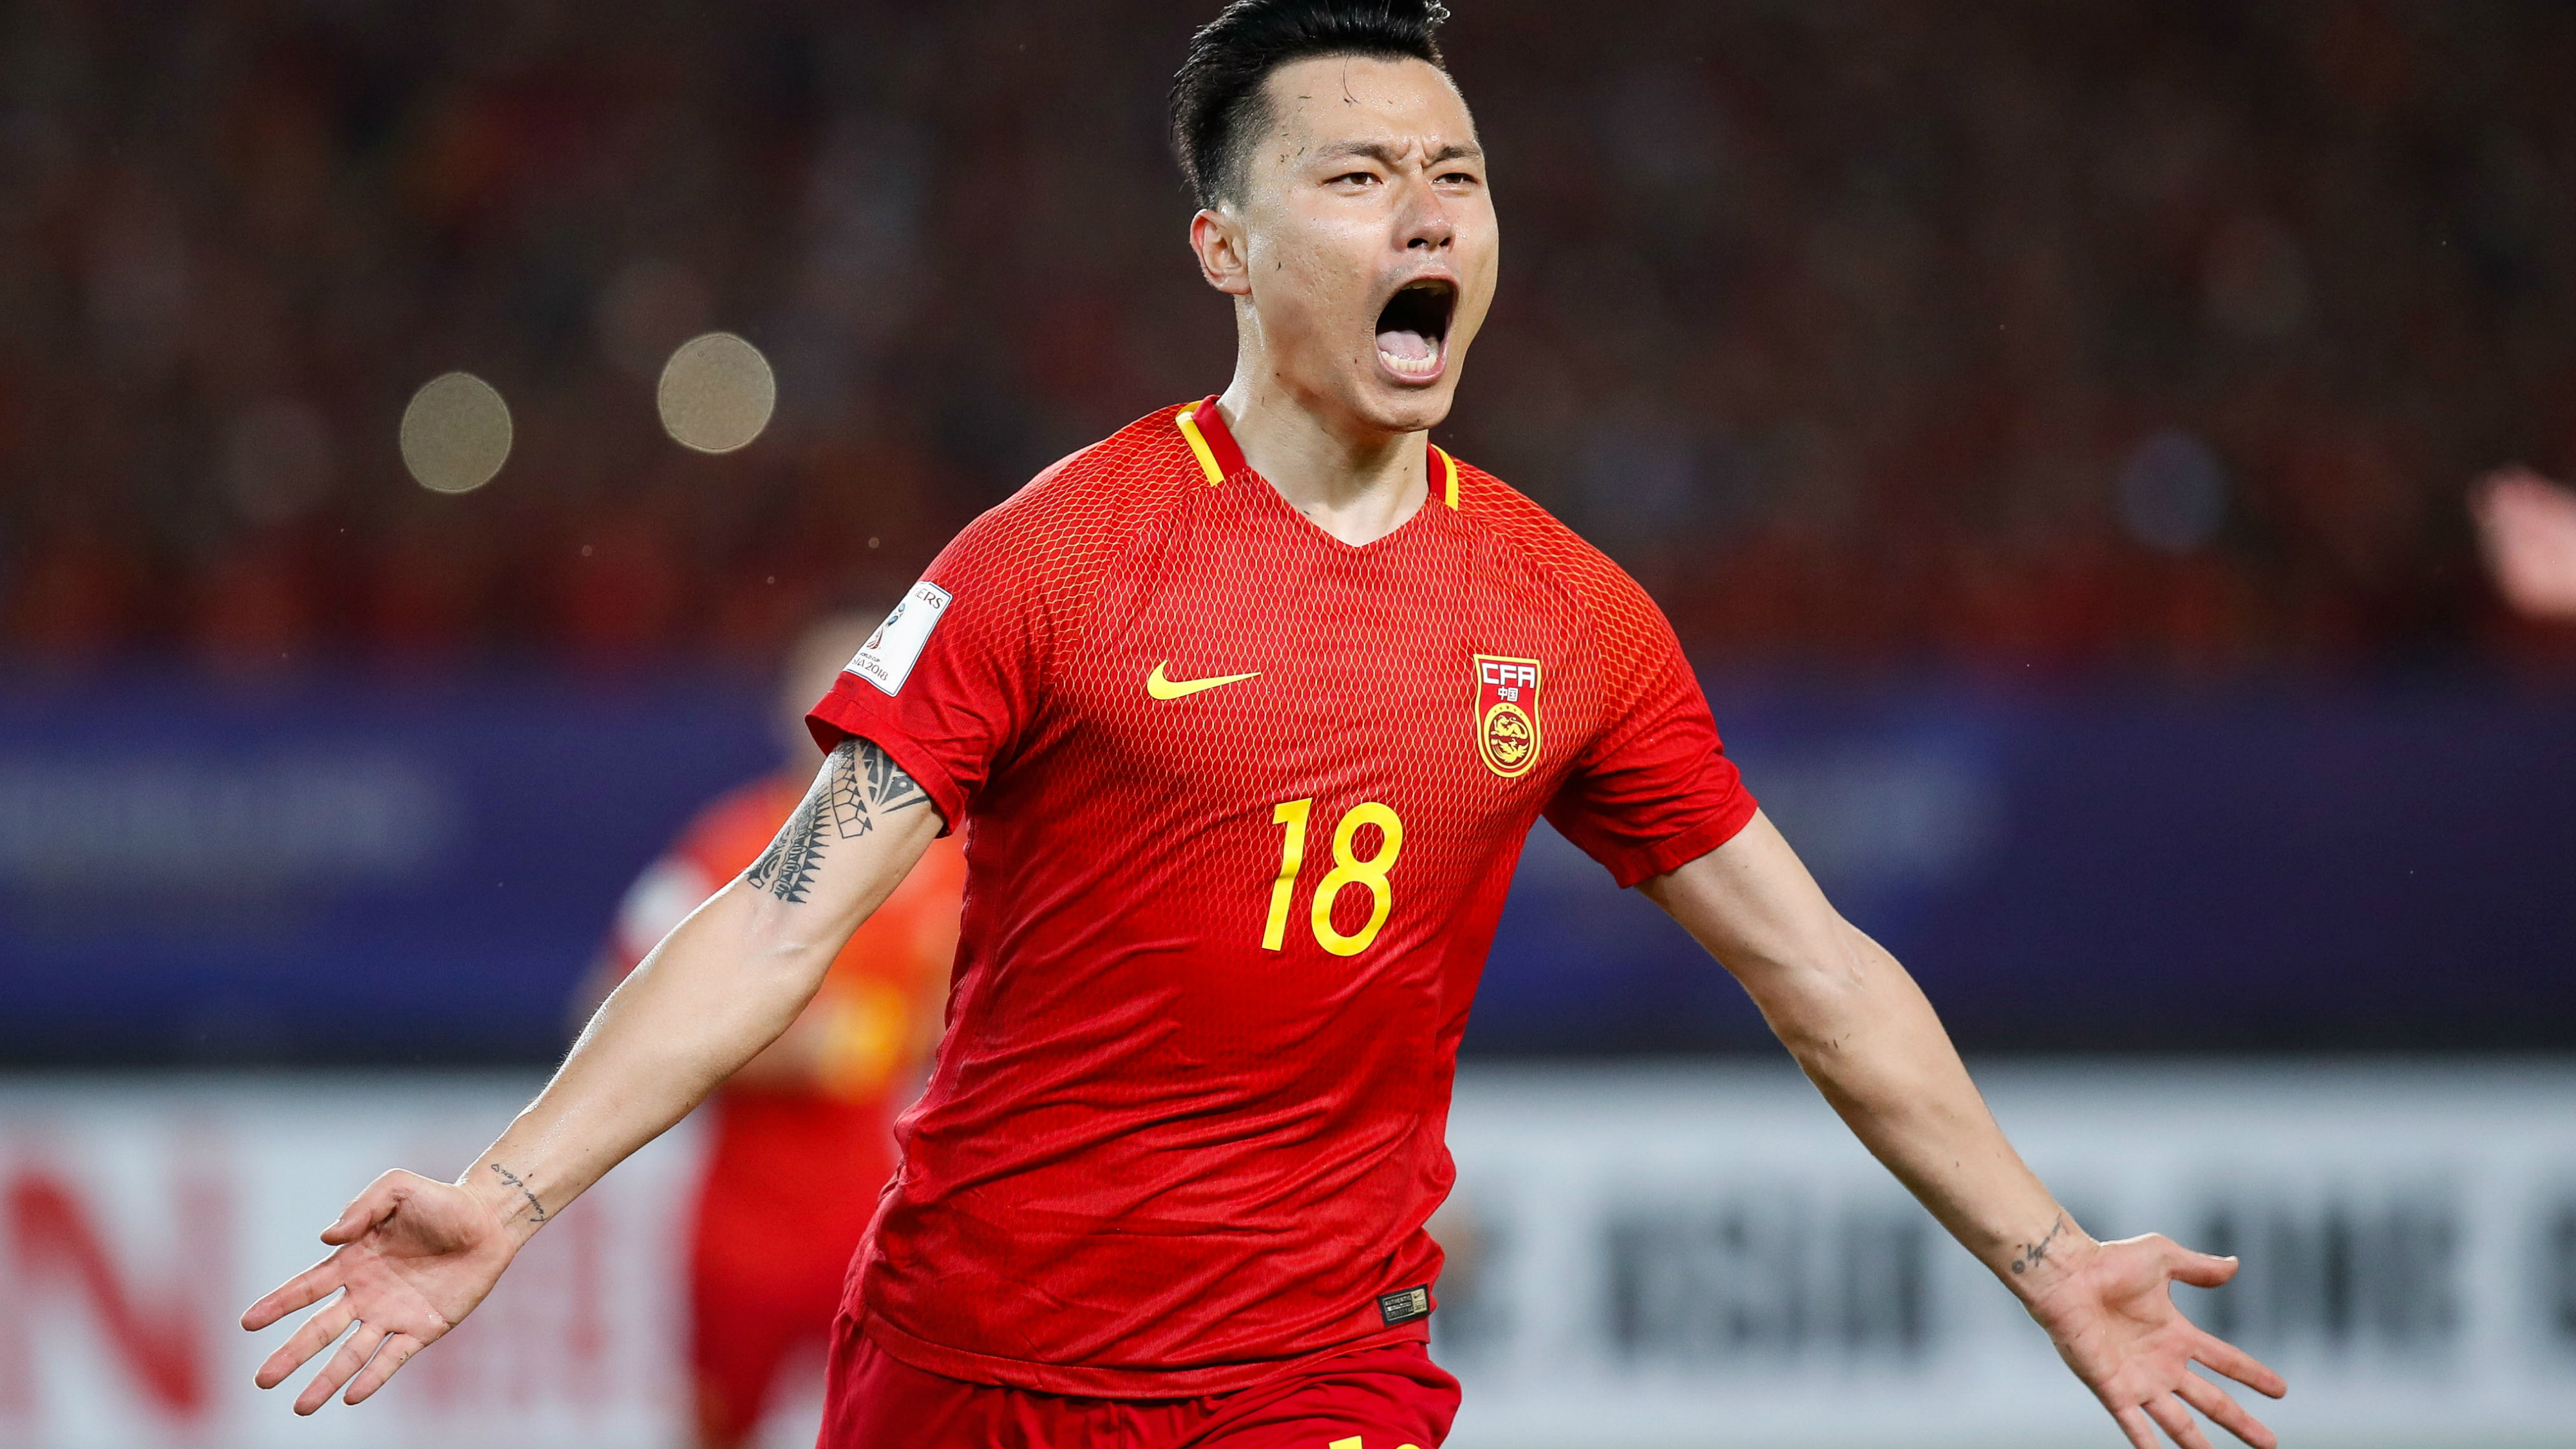 Gao Lin of China celebrates after scoring a goal from the penalty spot.